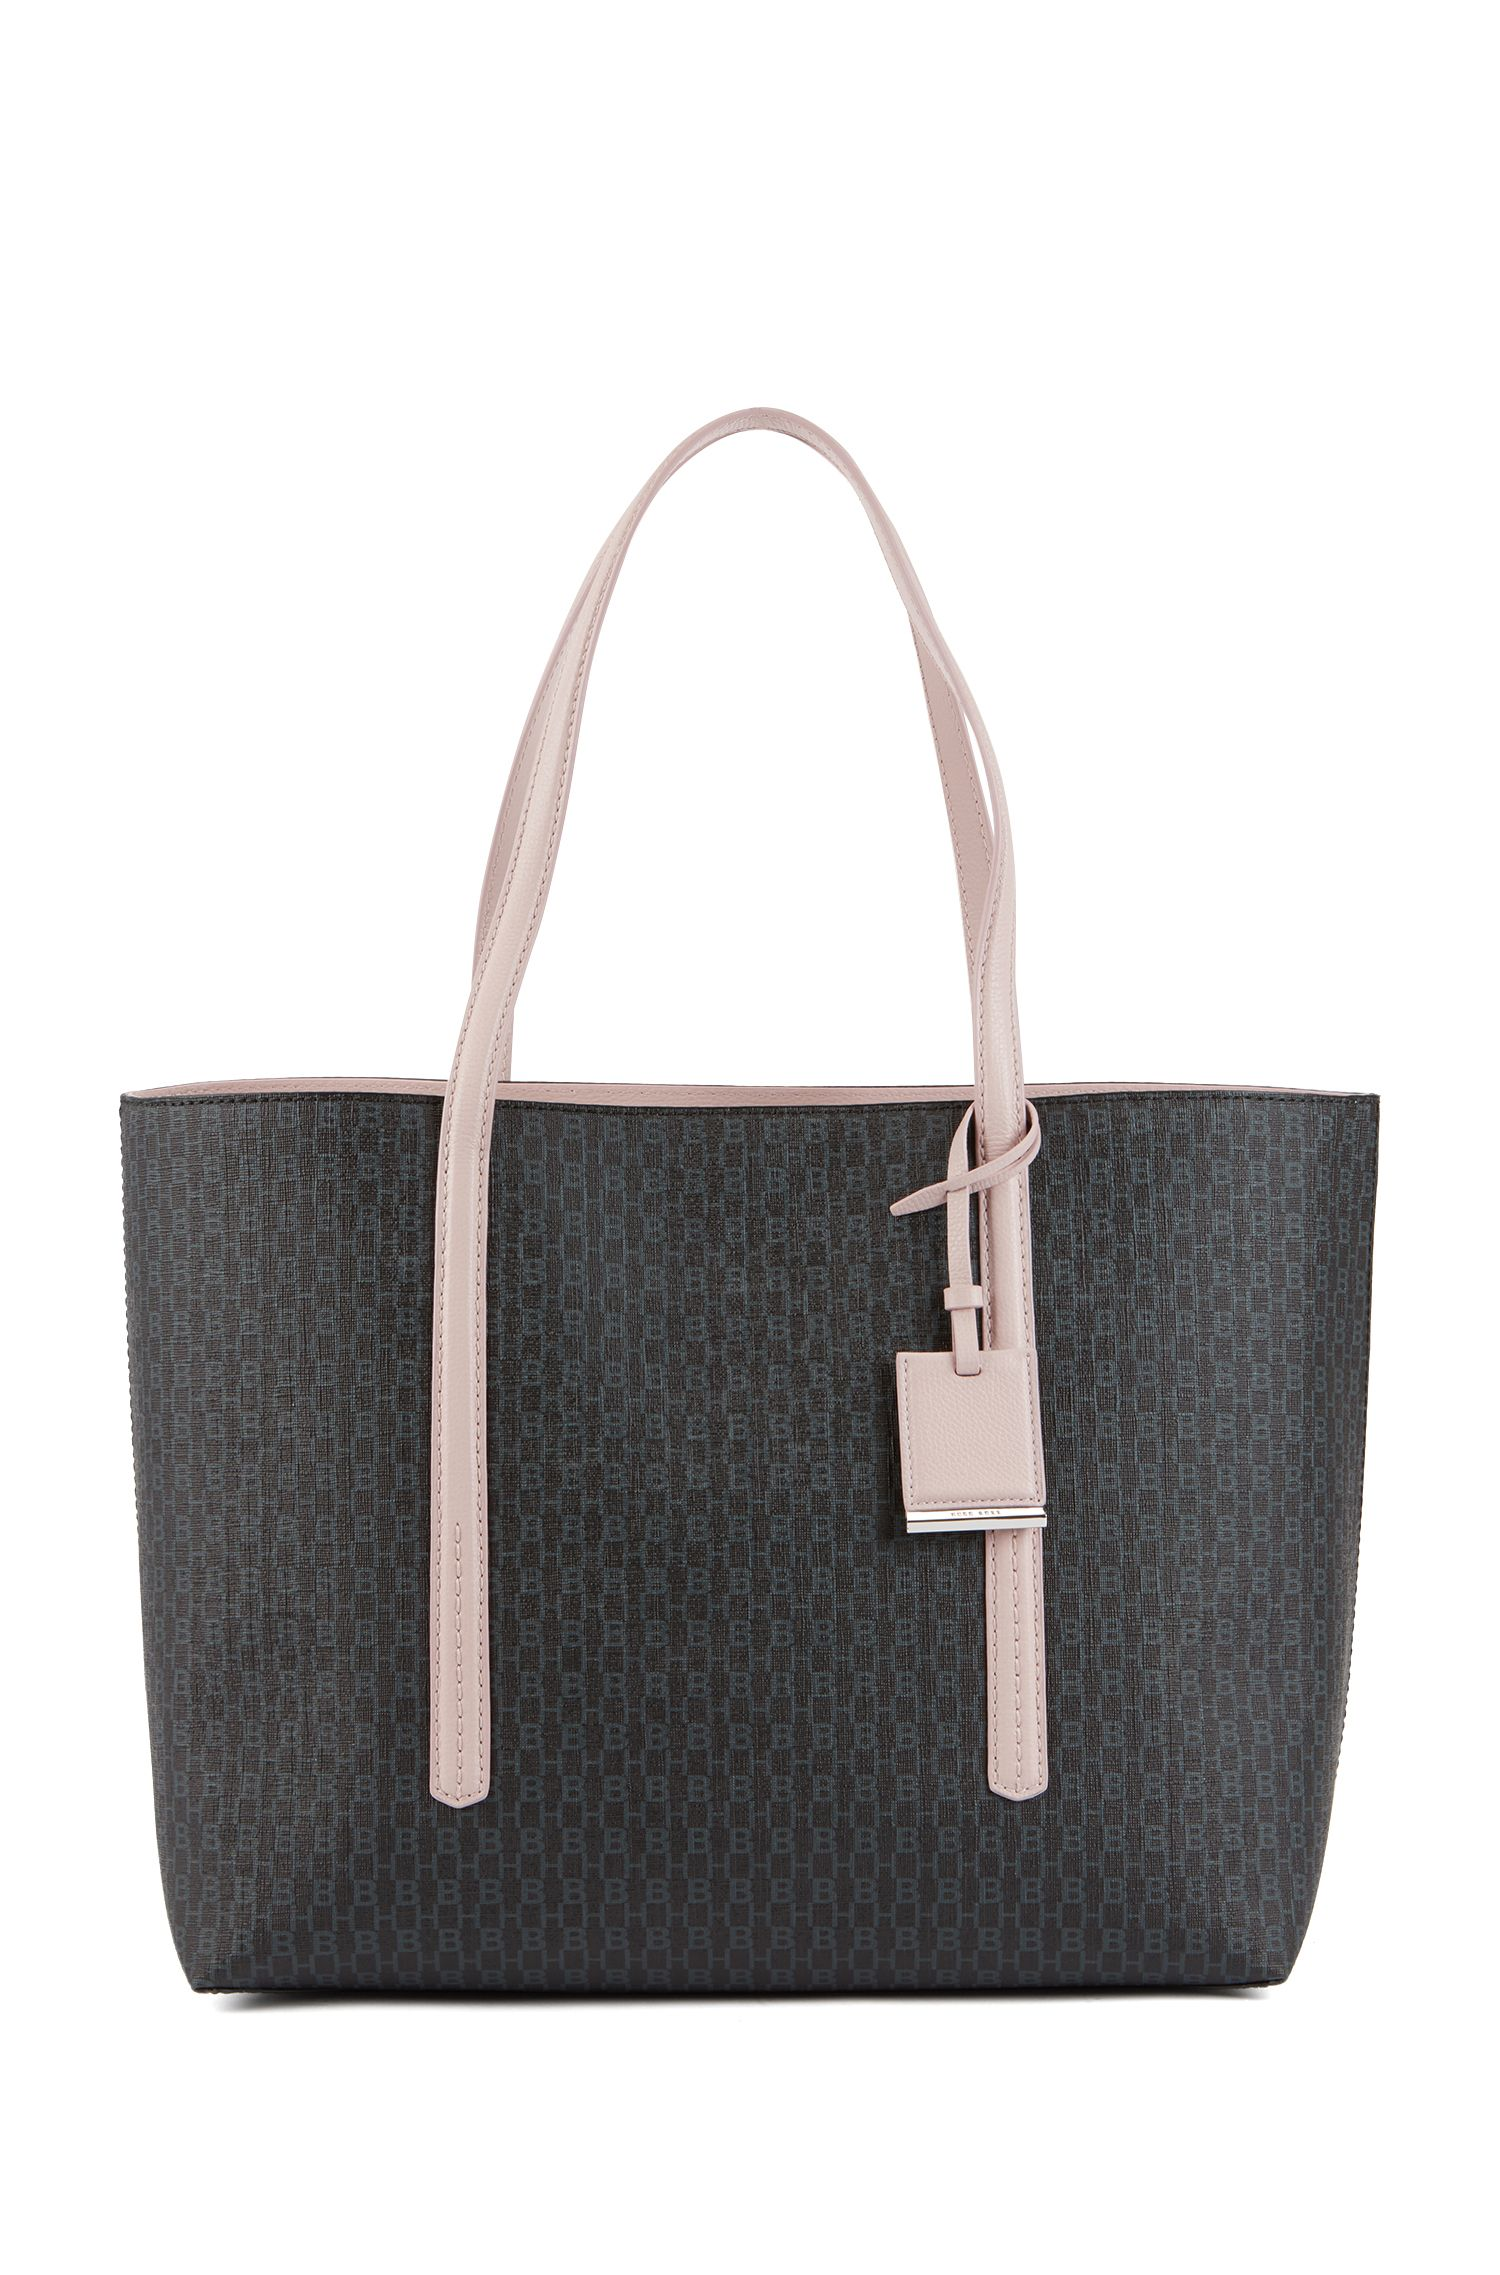 Shopper handbag in monogram-printed fabric, Black